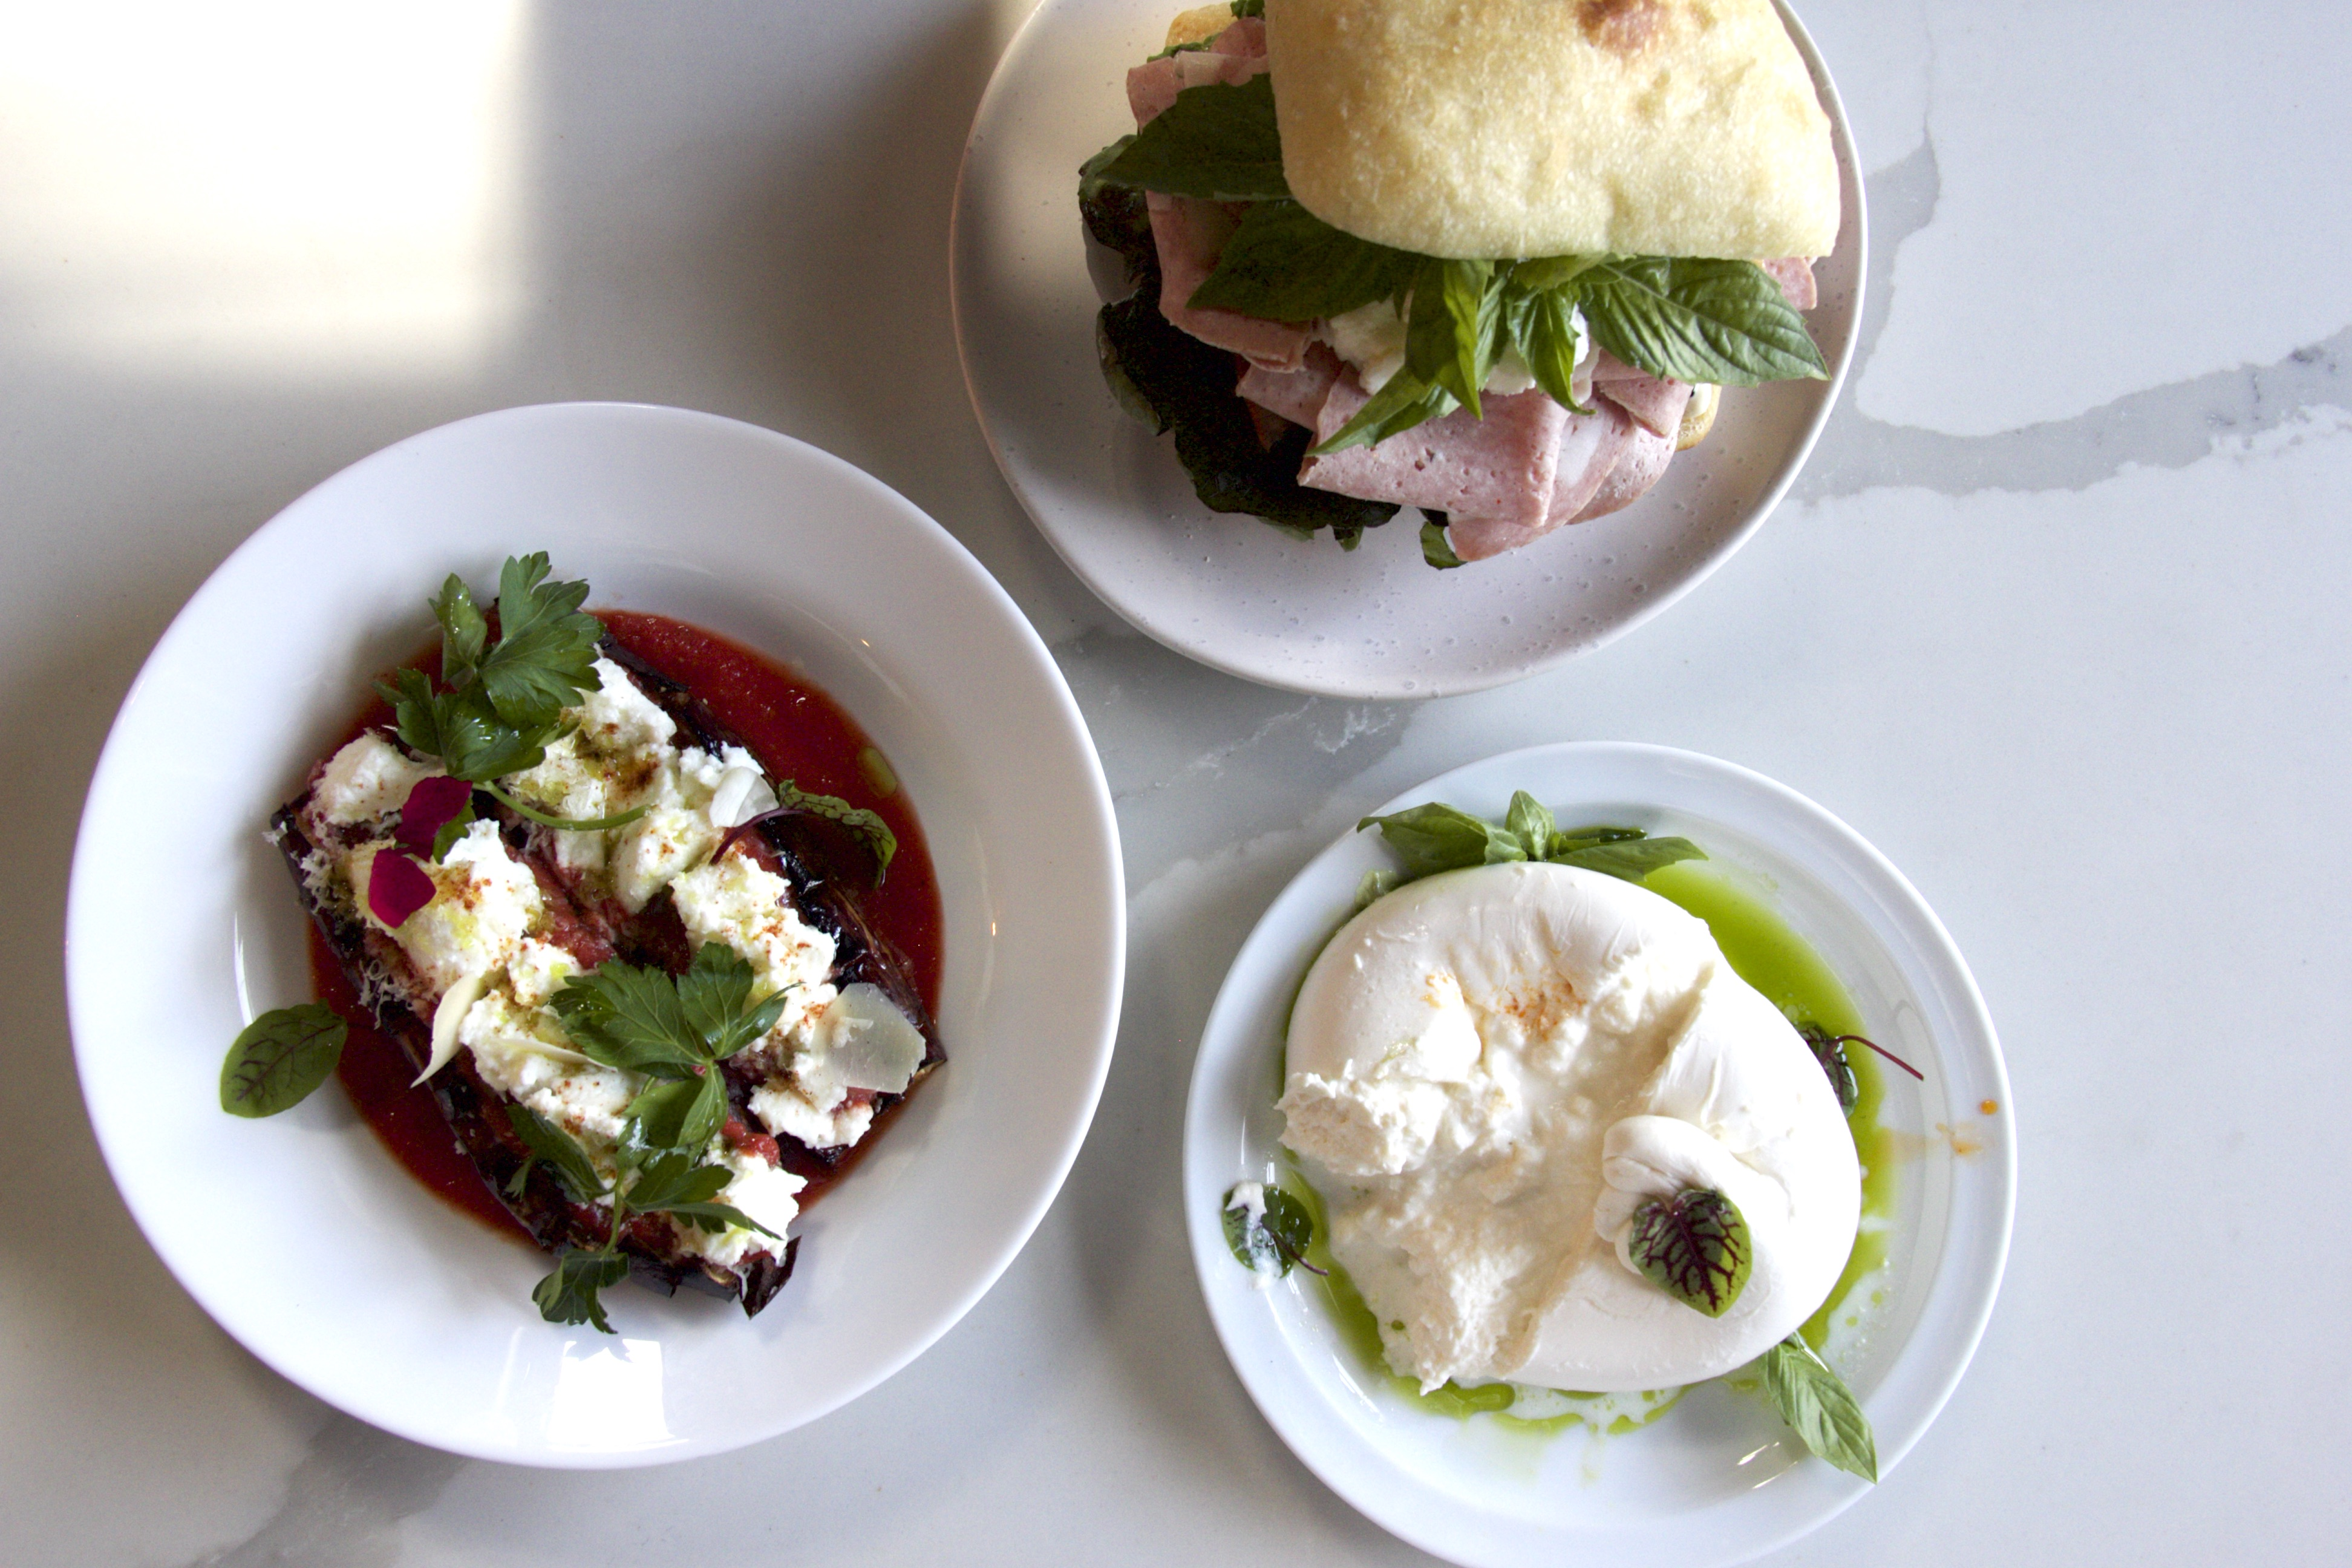 three dishes with burrata and sandwich on marble table